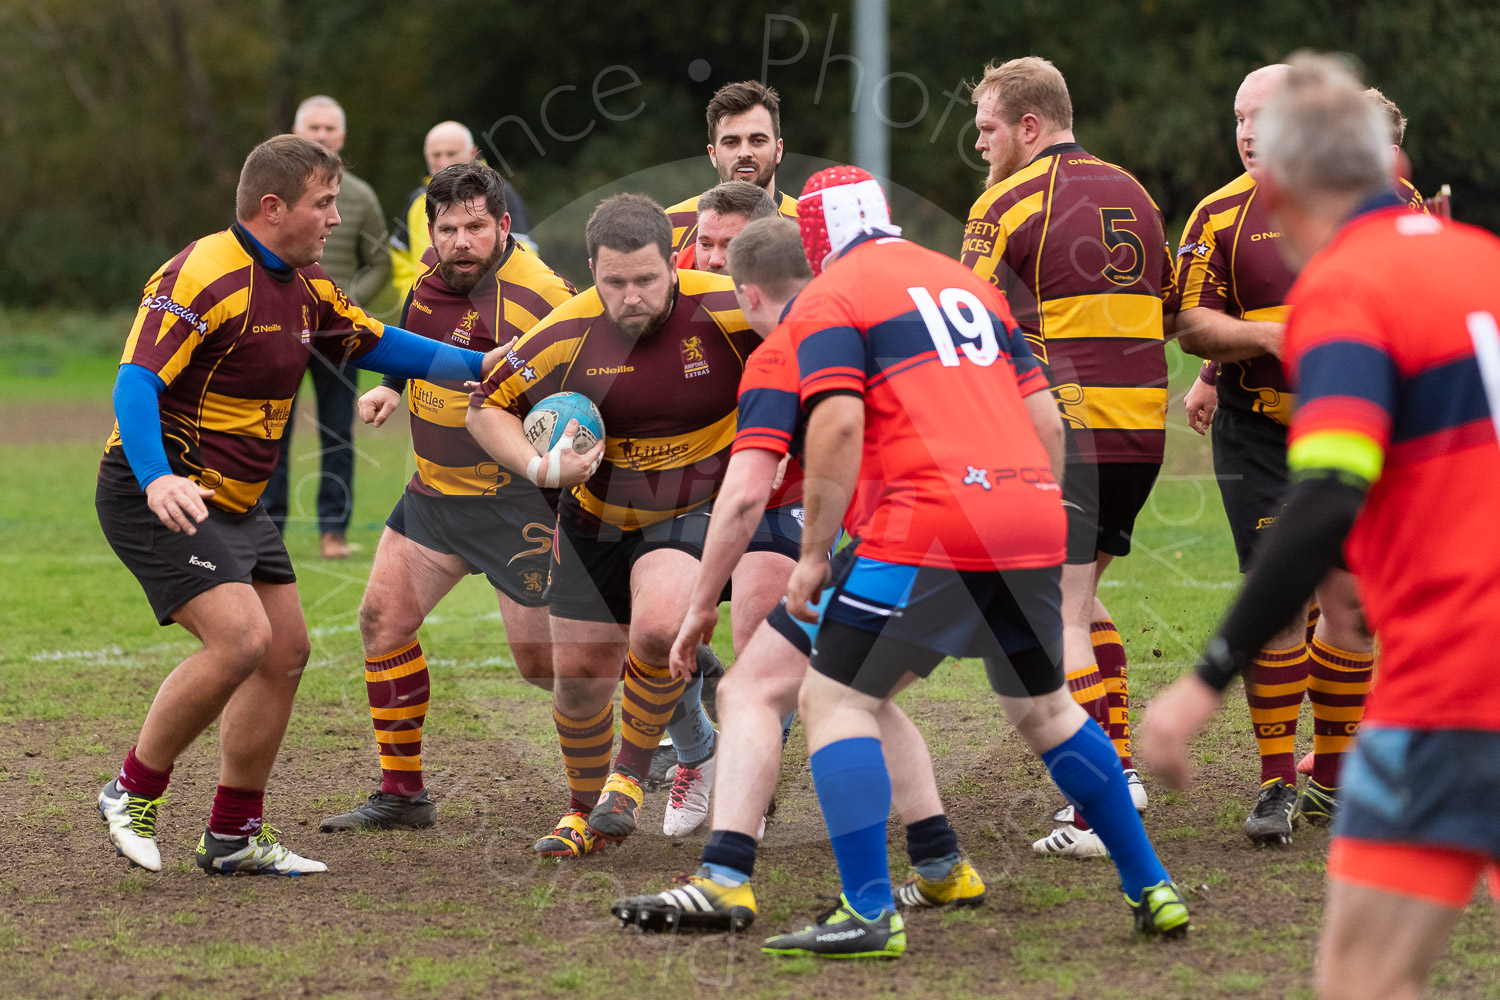 20181027 Amp Extras vs St Neots 2nd XV #2252